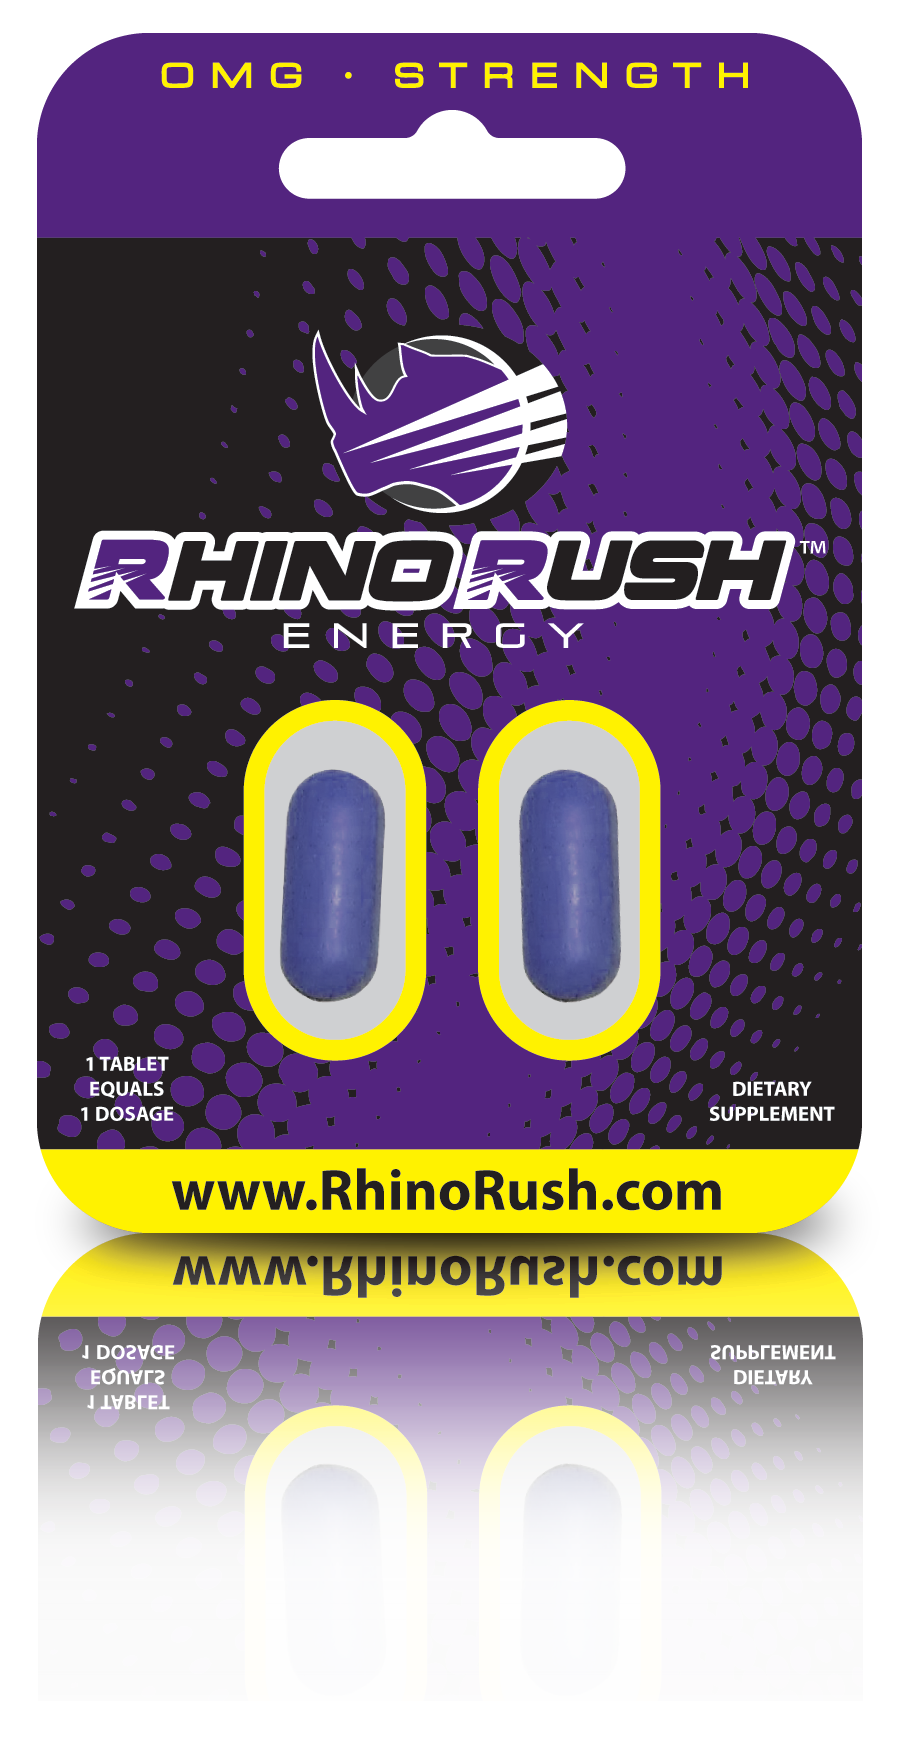 Rhino Rush Energy Tablets Are The Best Source Of Energy On The Market Energy Sources Energy Tablet